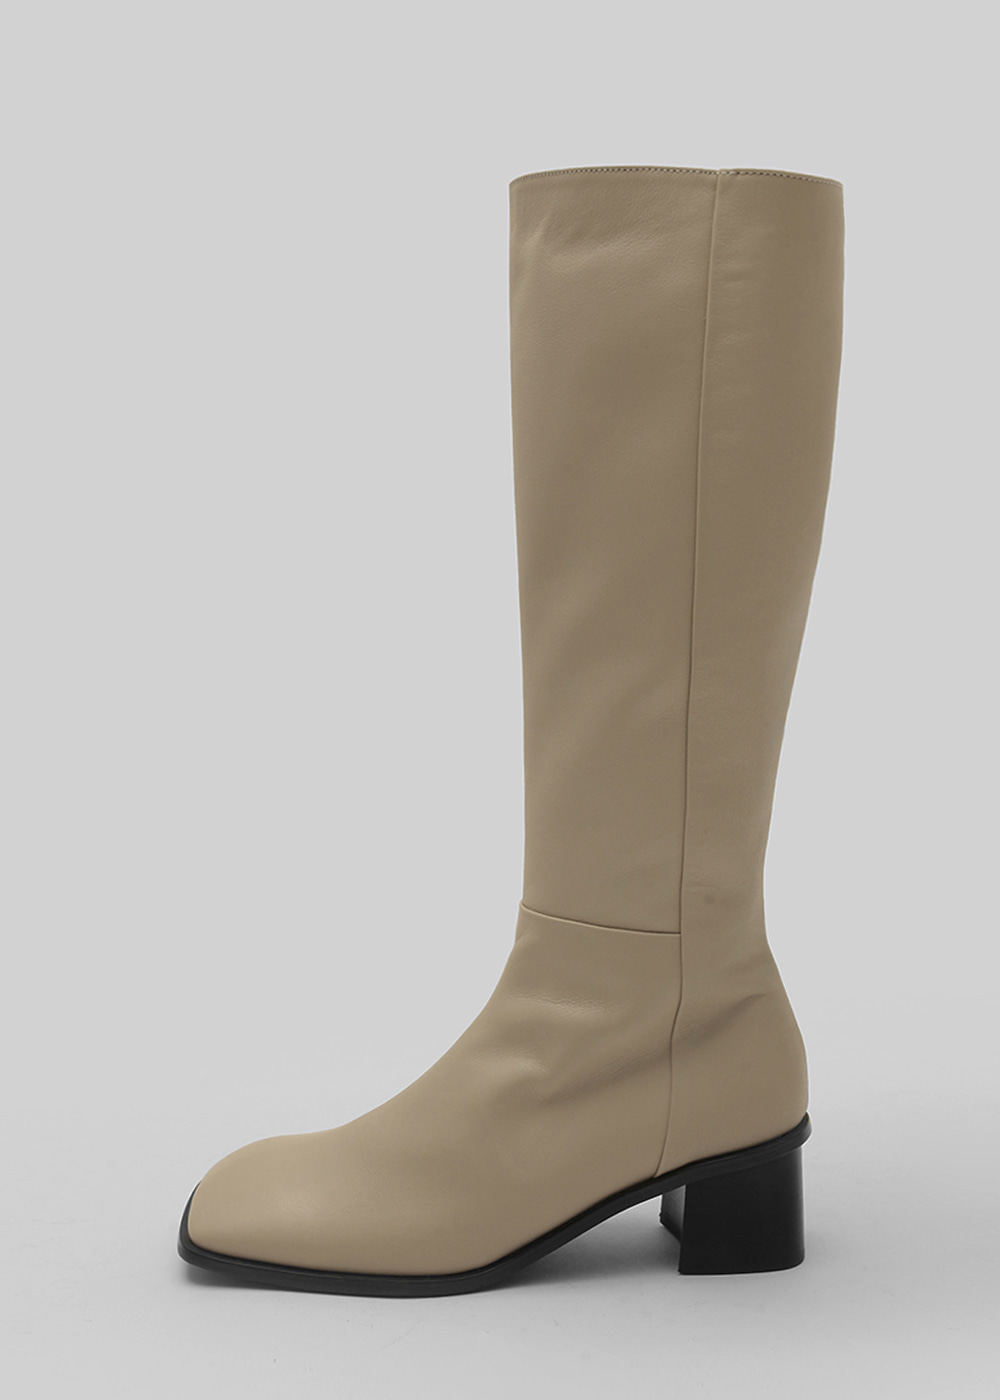 WIDE SQUARE LONG BOOTS [C1F03 BE]